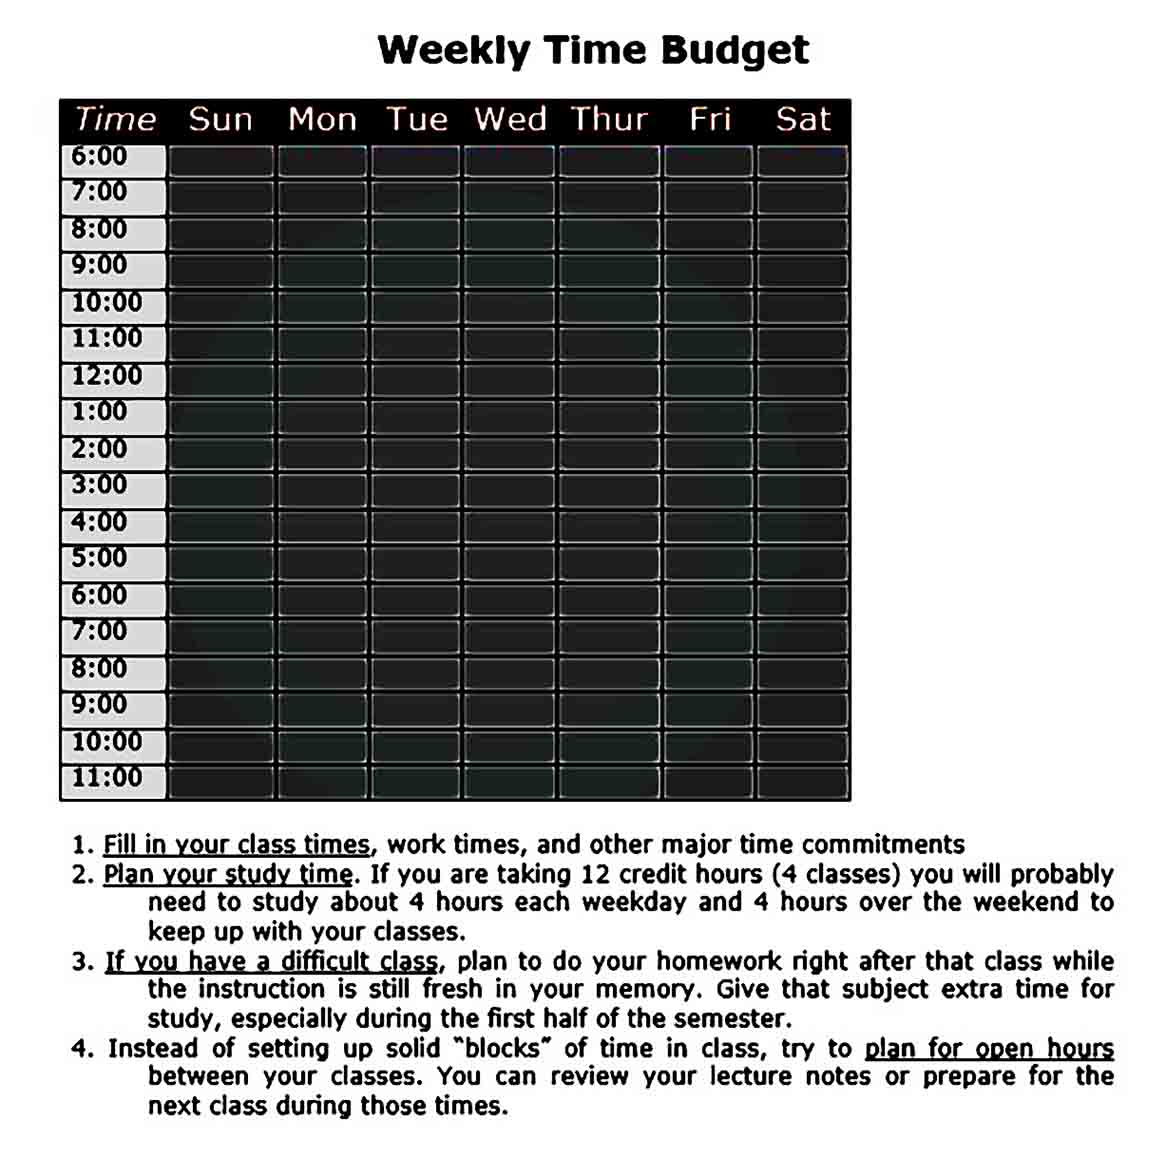 weekly time budget